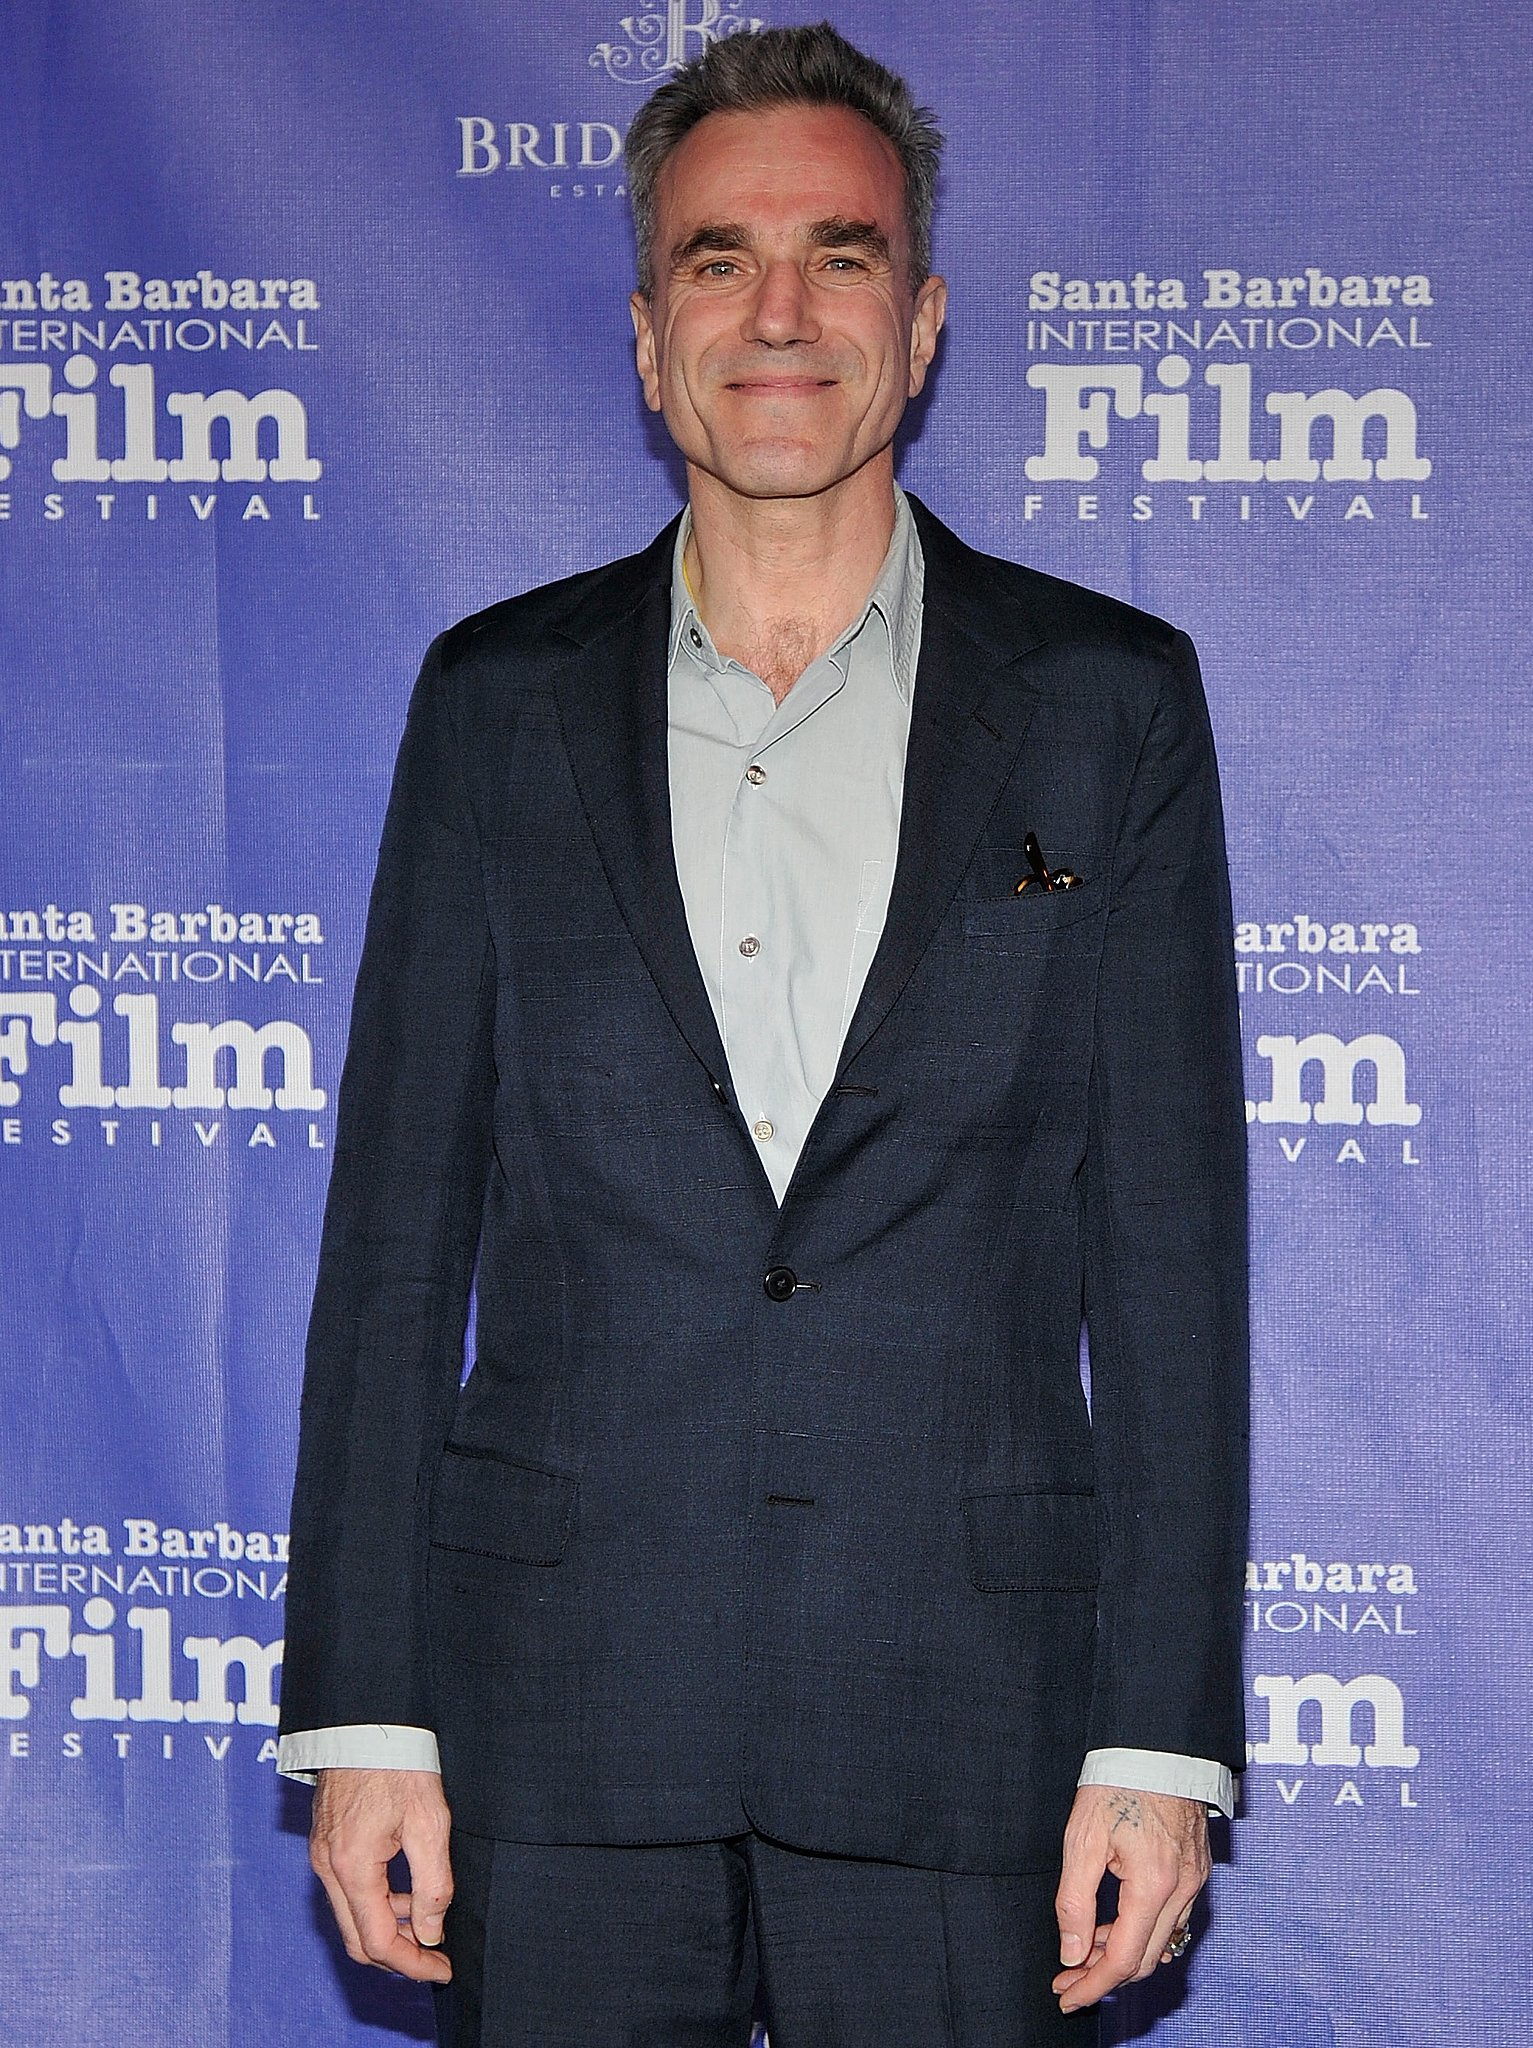 actor winner, Daniel Day-Lewis, will return to the Oscars to present